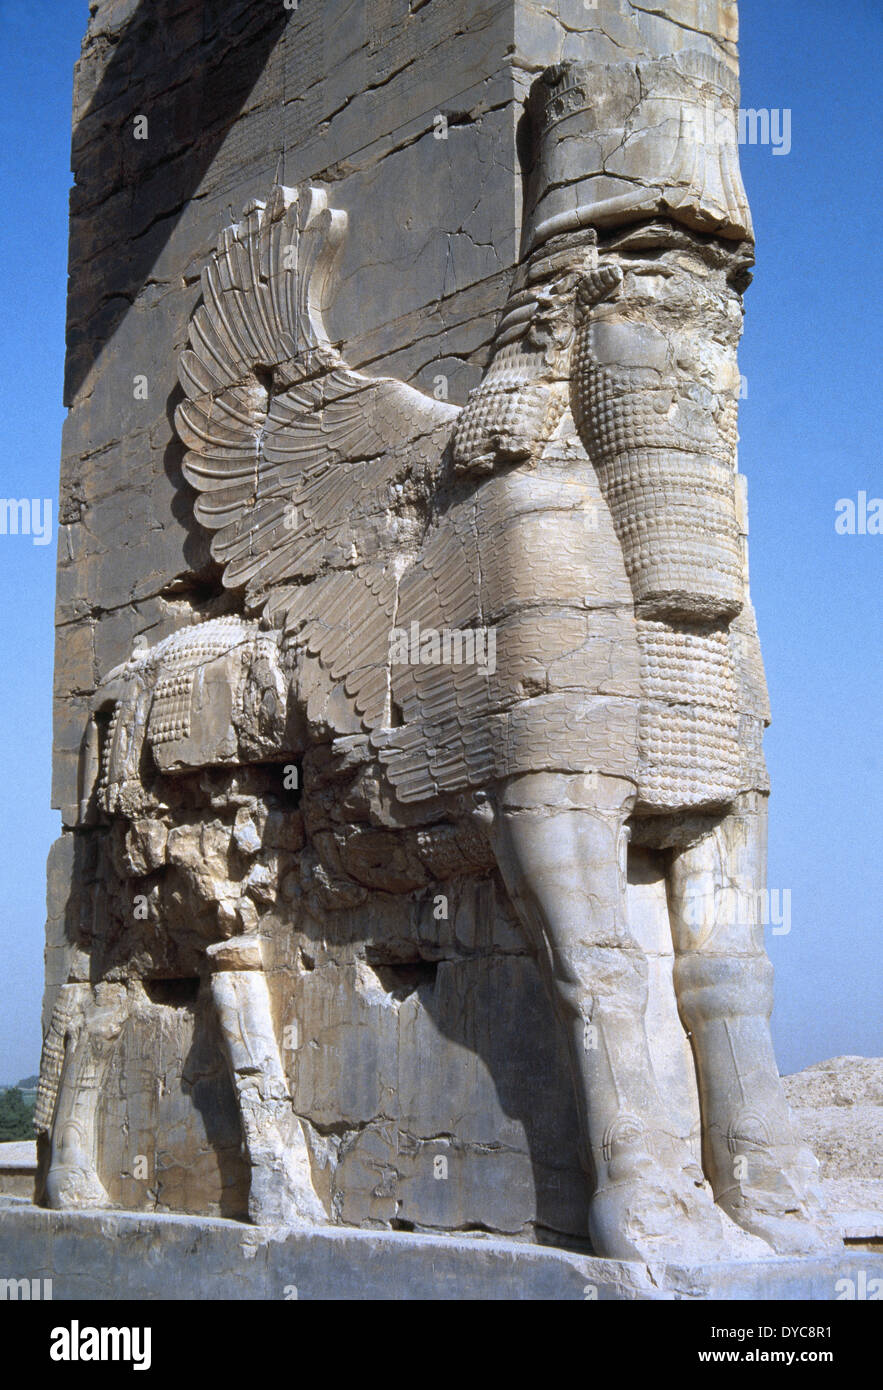 Iran. Persepolis. The Gate of all Nations or Xerxus Gateway. Lamassu. Assyrian protective deity. Bull's body and Stock Photo